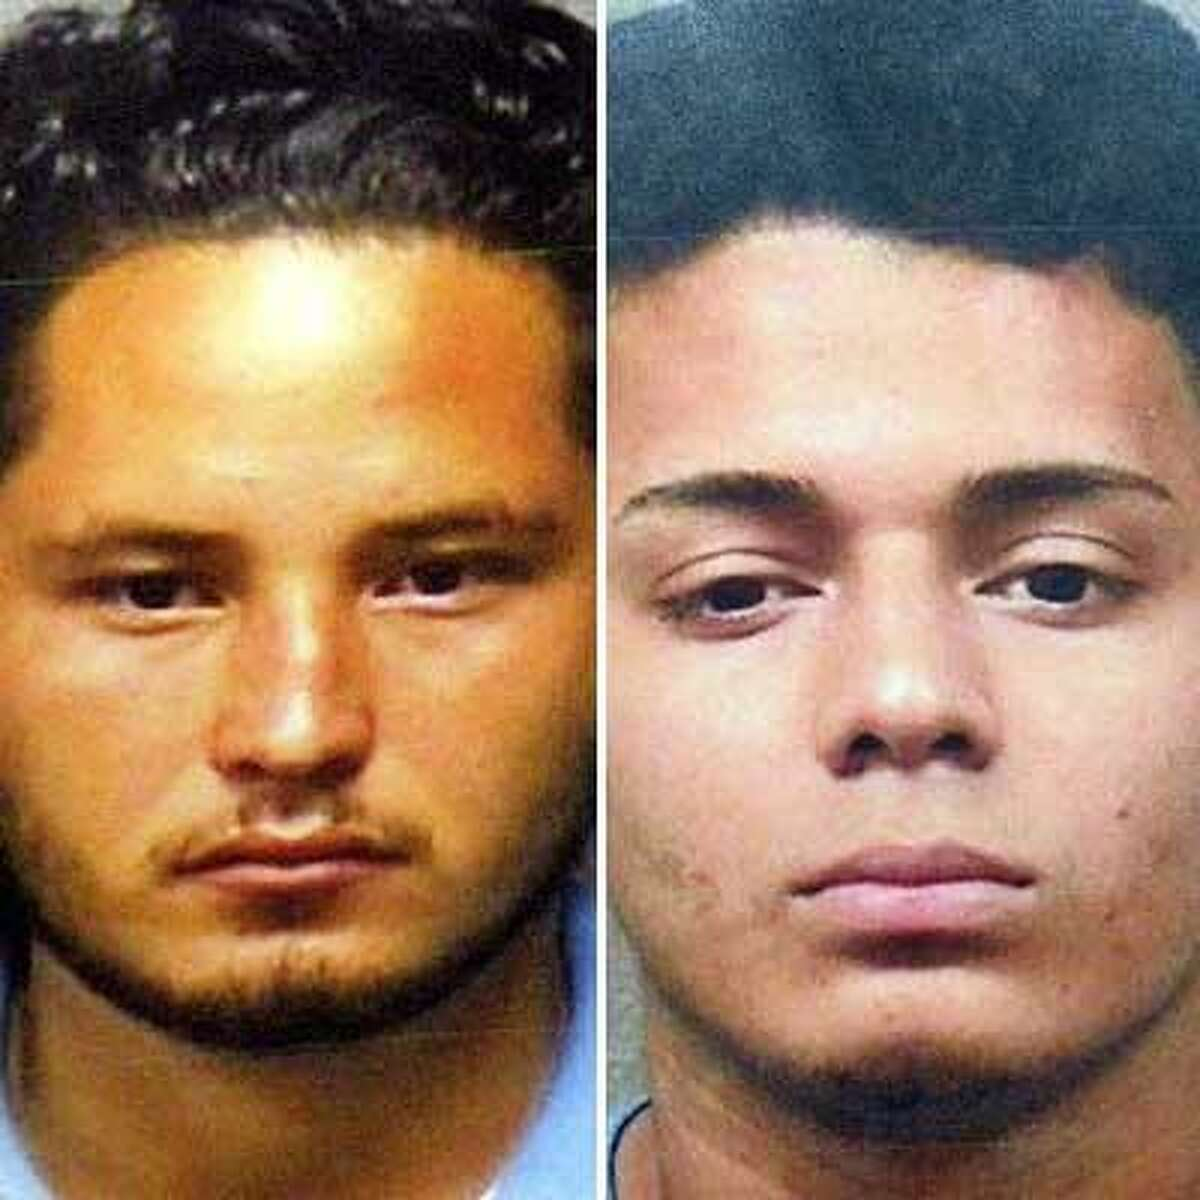 Suspect Melvin Alvarado, 22, left, was deported twice. Another suspect, Jonathan Ariel Lopez-Torres, 18, is a lawful permanent resident from Honduras.